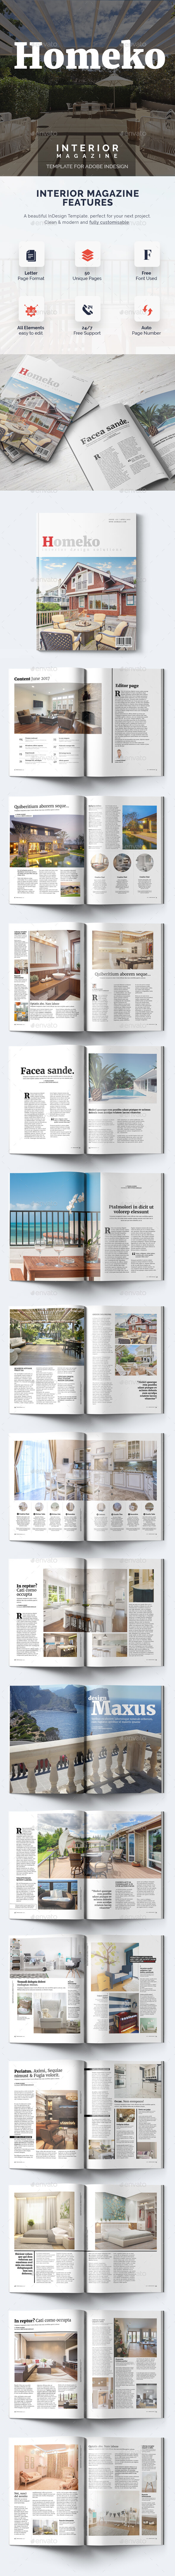 Homeko - 50 Pages Interior Magazine Template - Magazines Print Templates